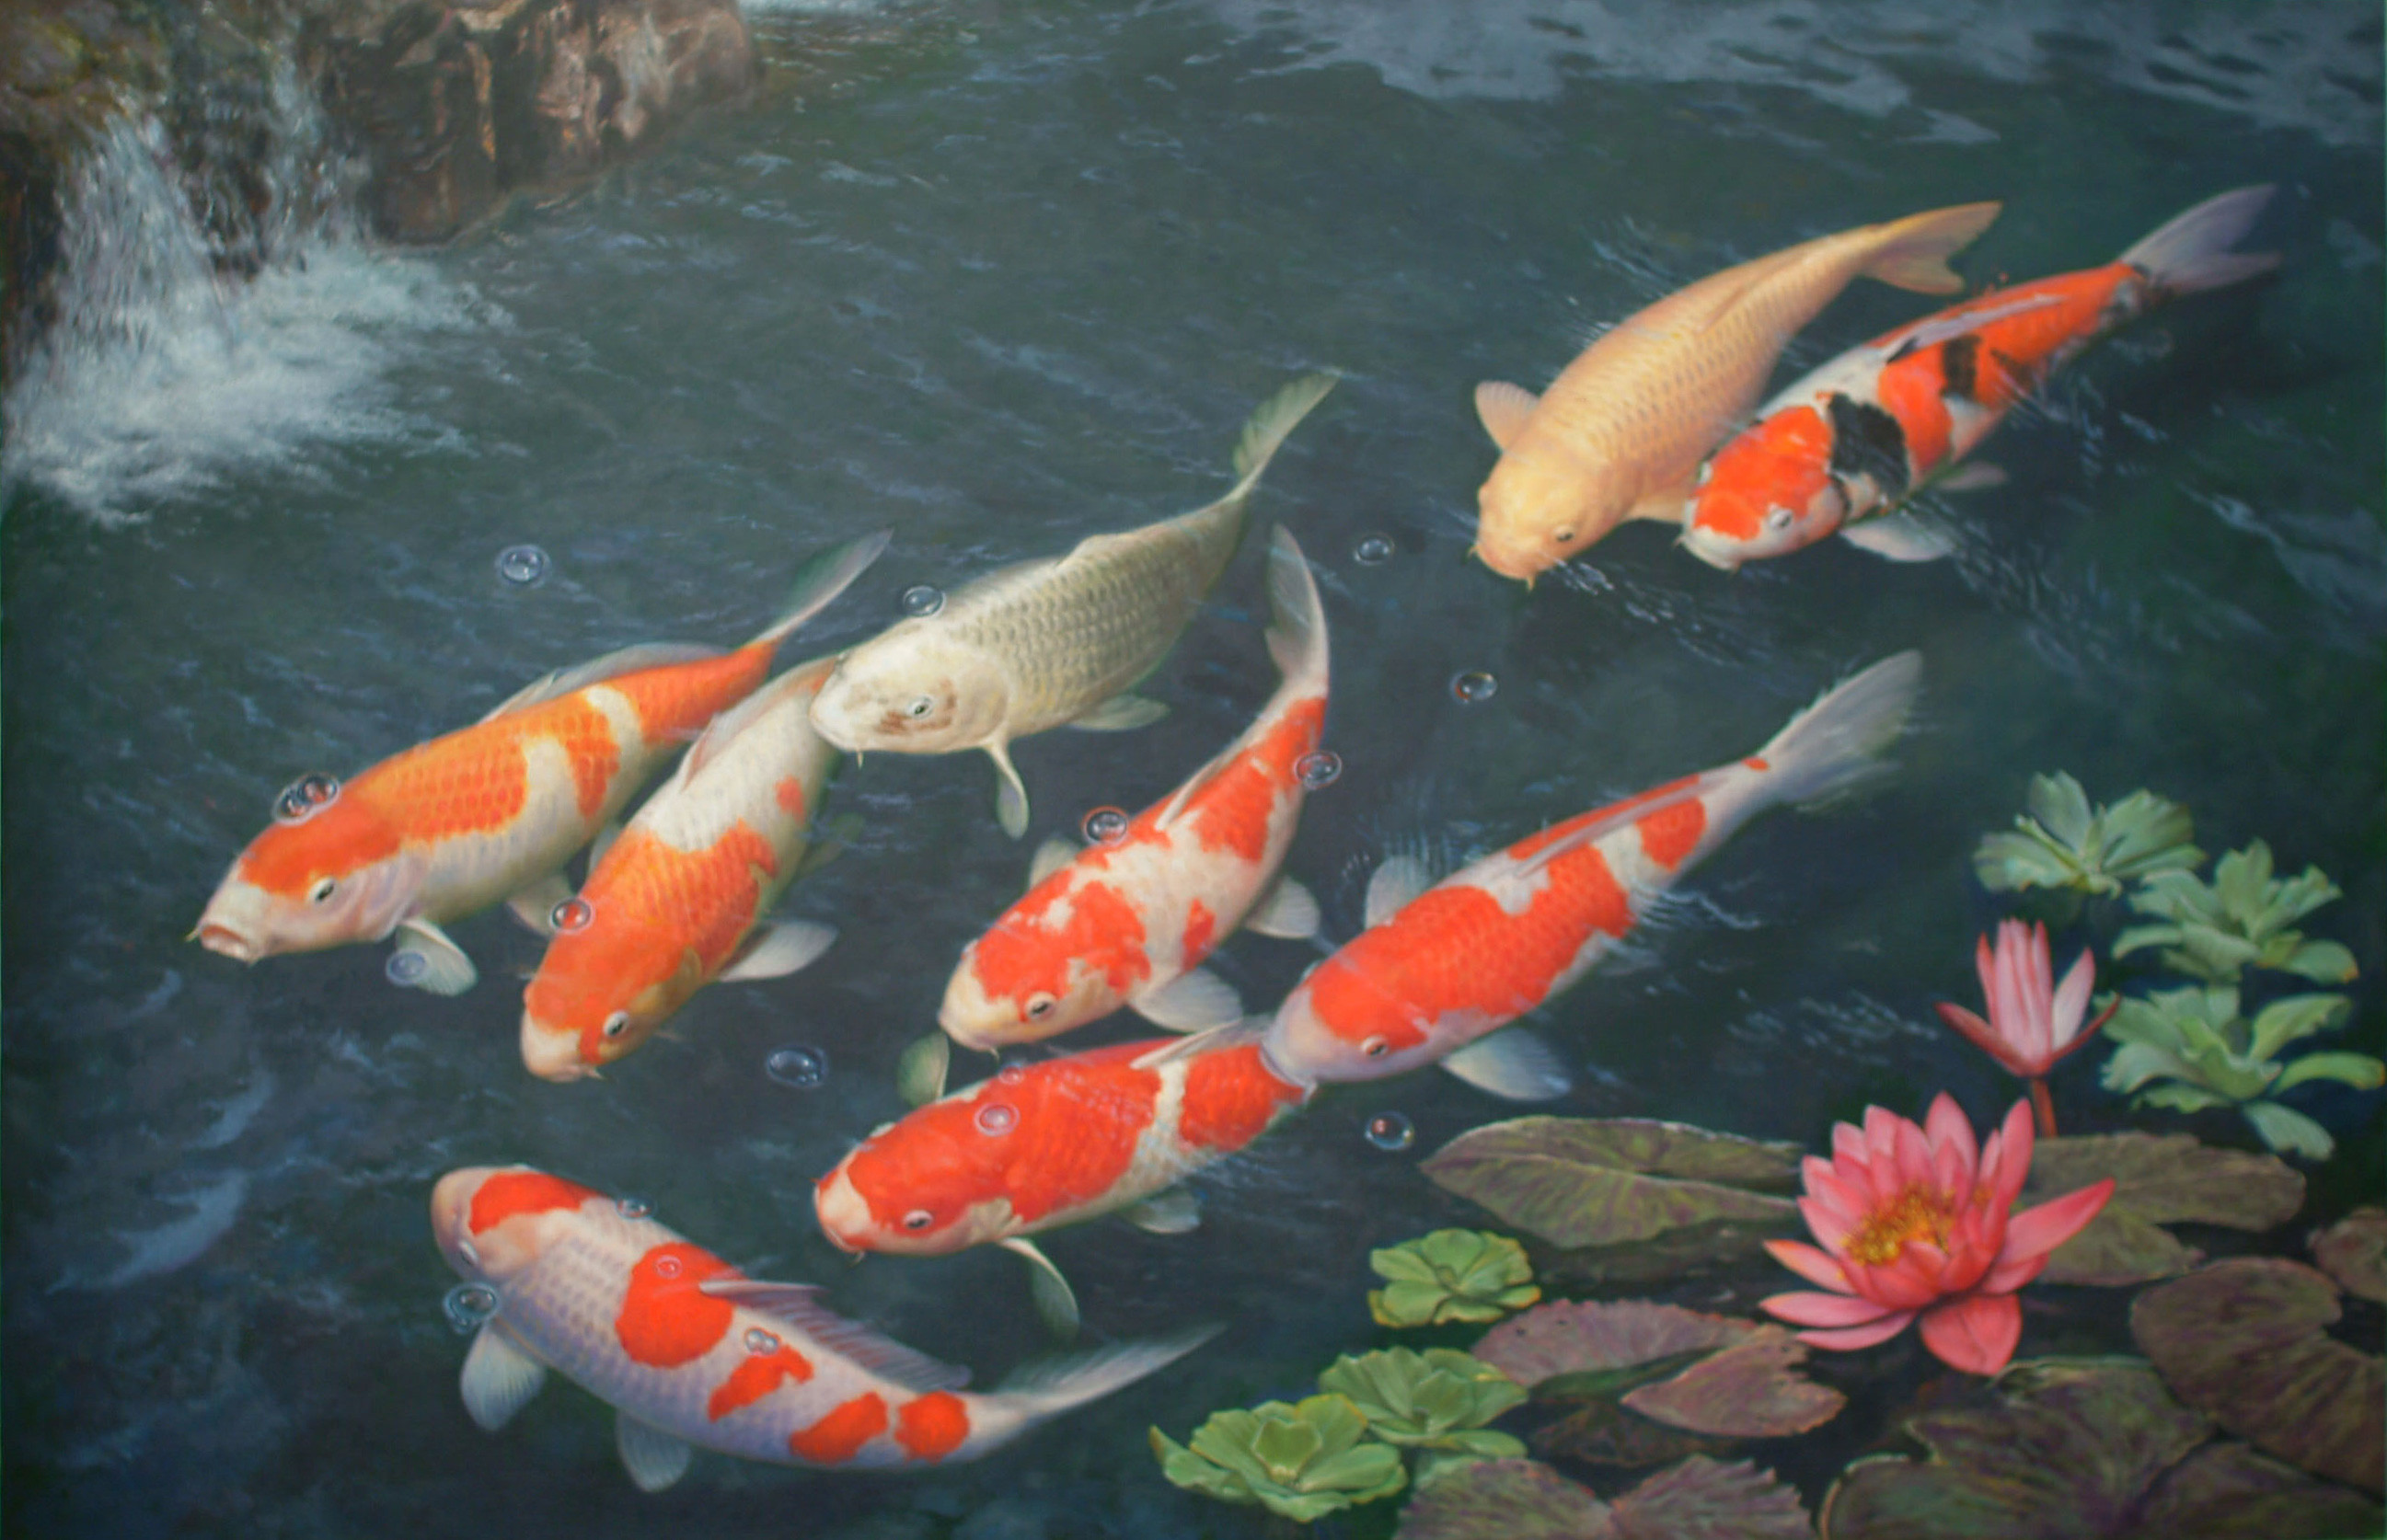 2594x1674 koi fish wallpaper for walls koi fish wallpaper free download koi fish .